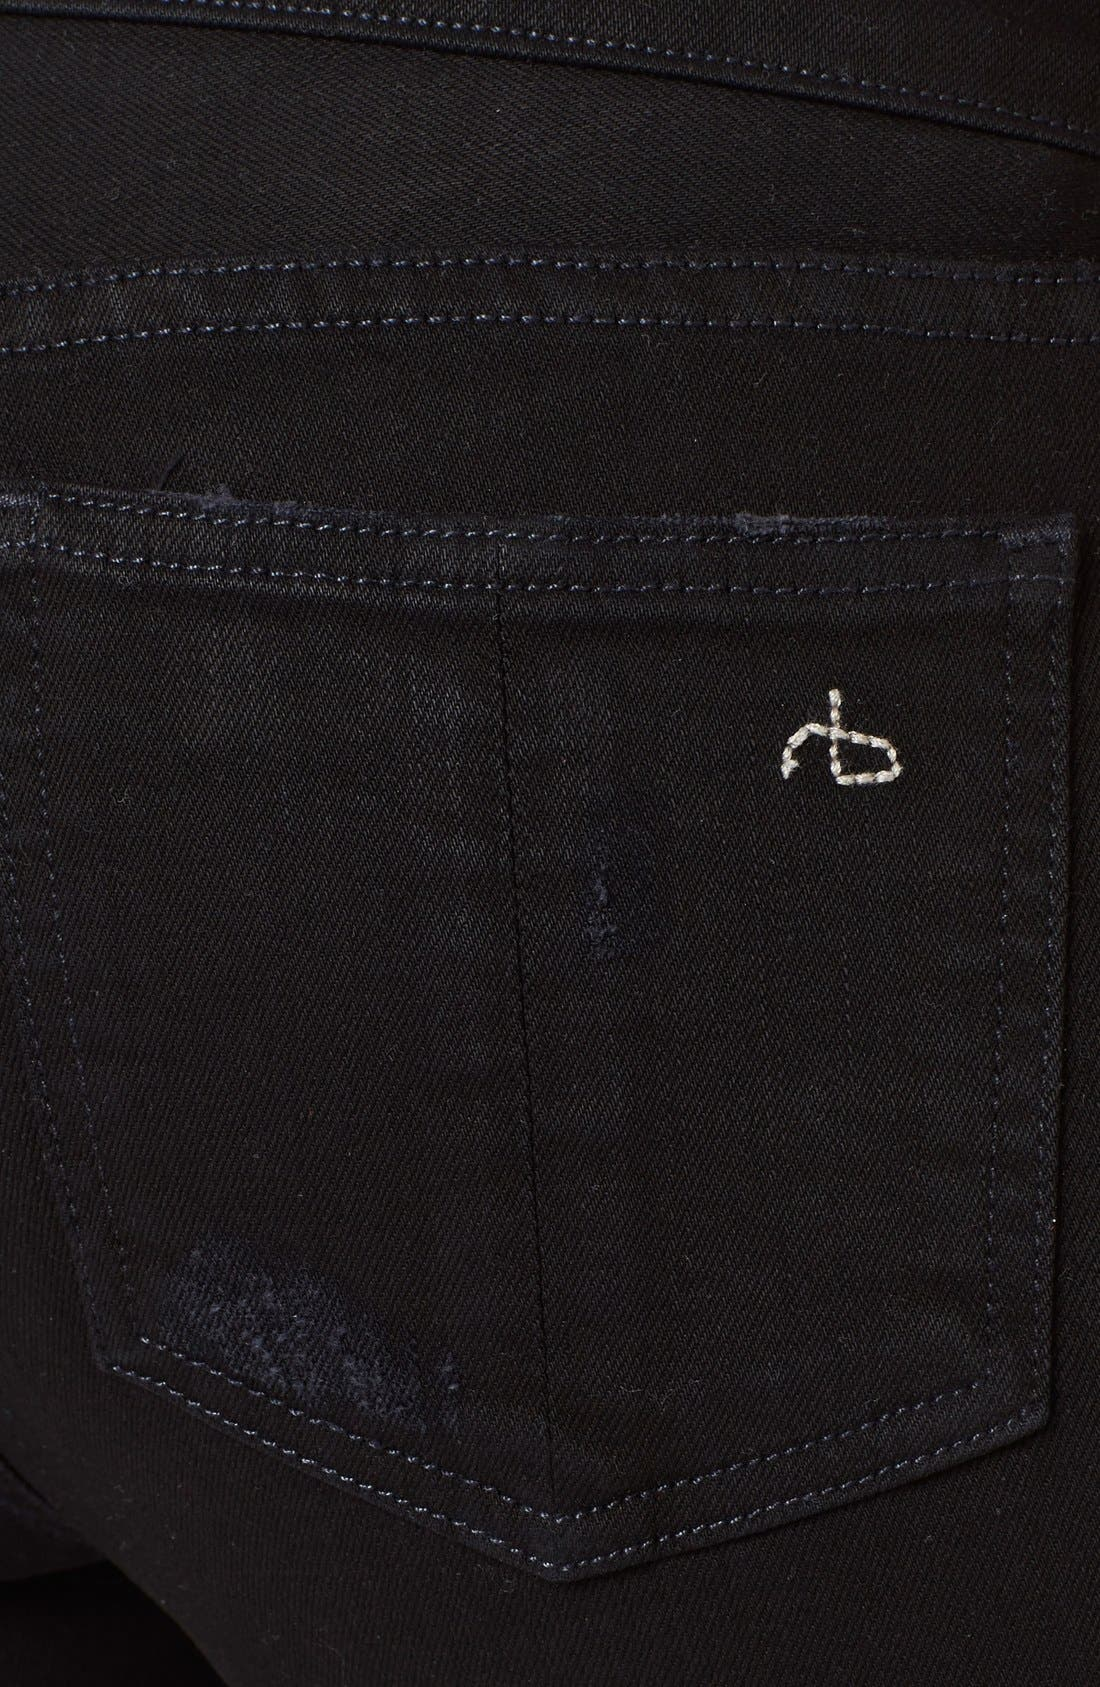 'The Skinny' Stretch Jeans,                             Alternate thumbnail 19, color,